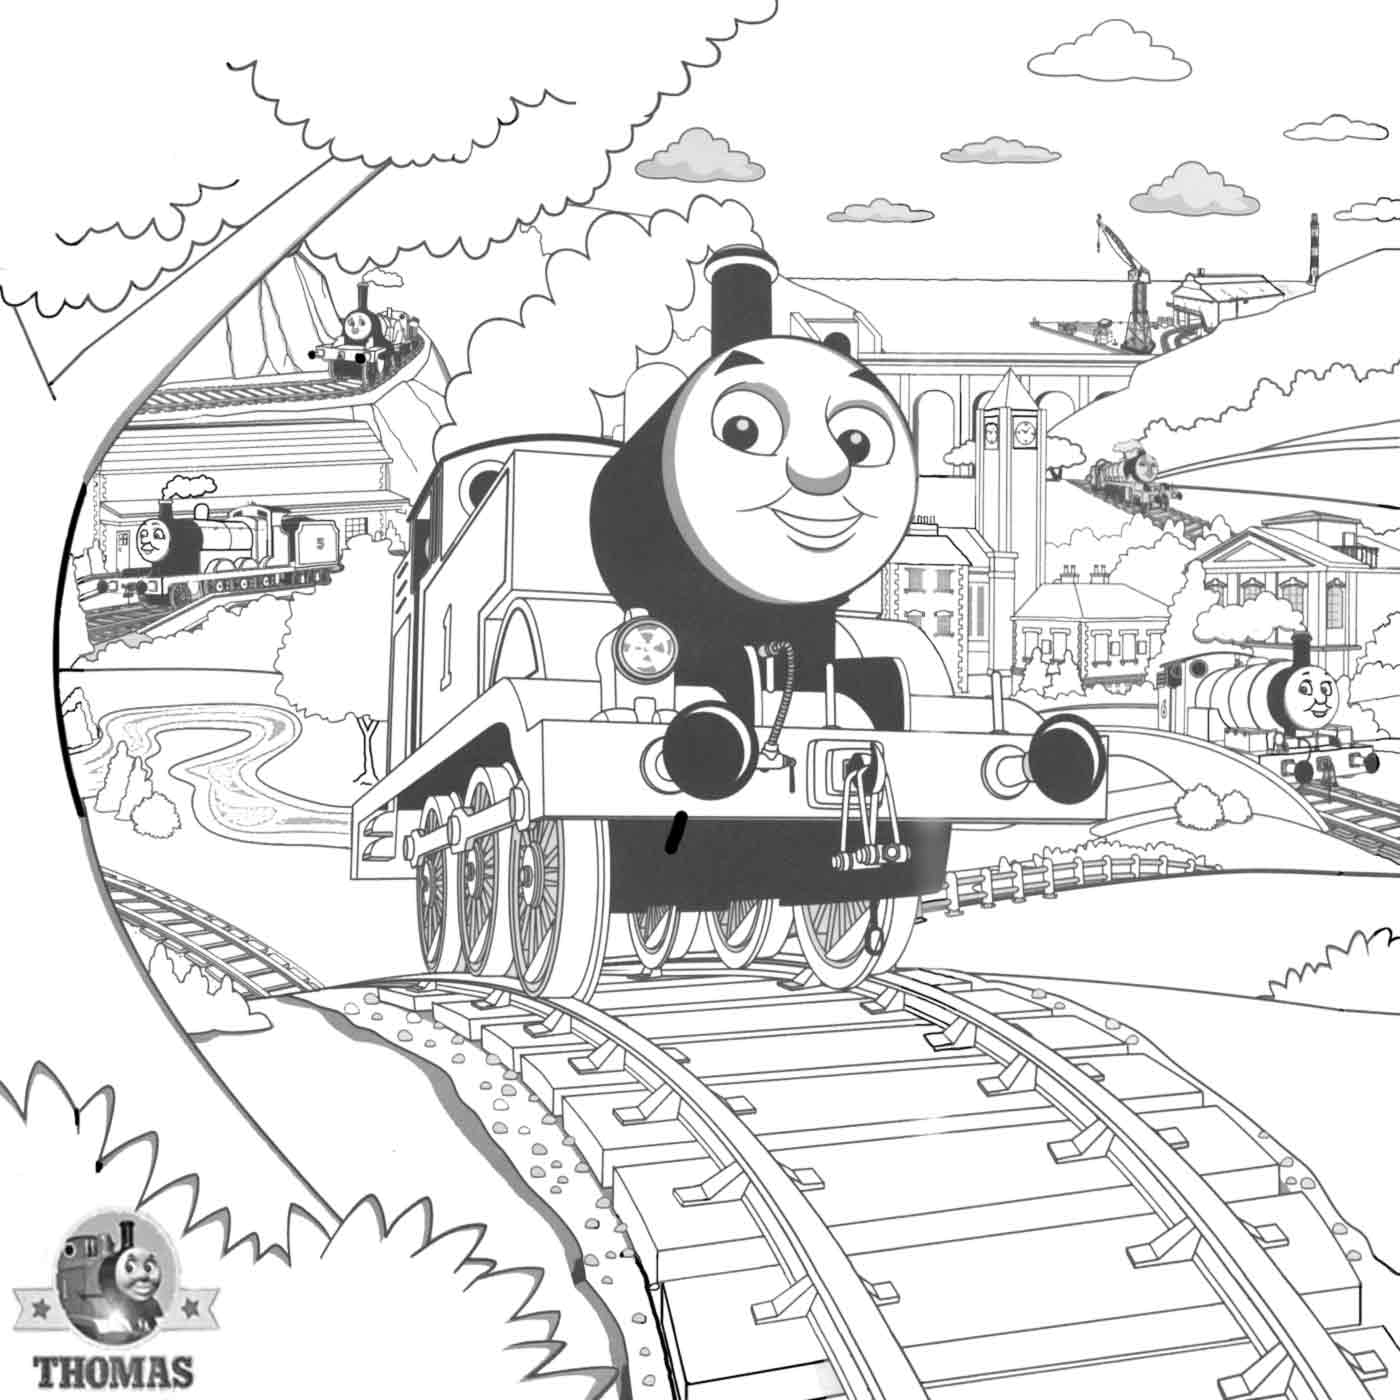 printable steam train coloring pages amazing steam train on railroad coloring page color luna train pages printable coloring steam